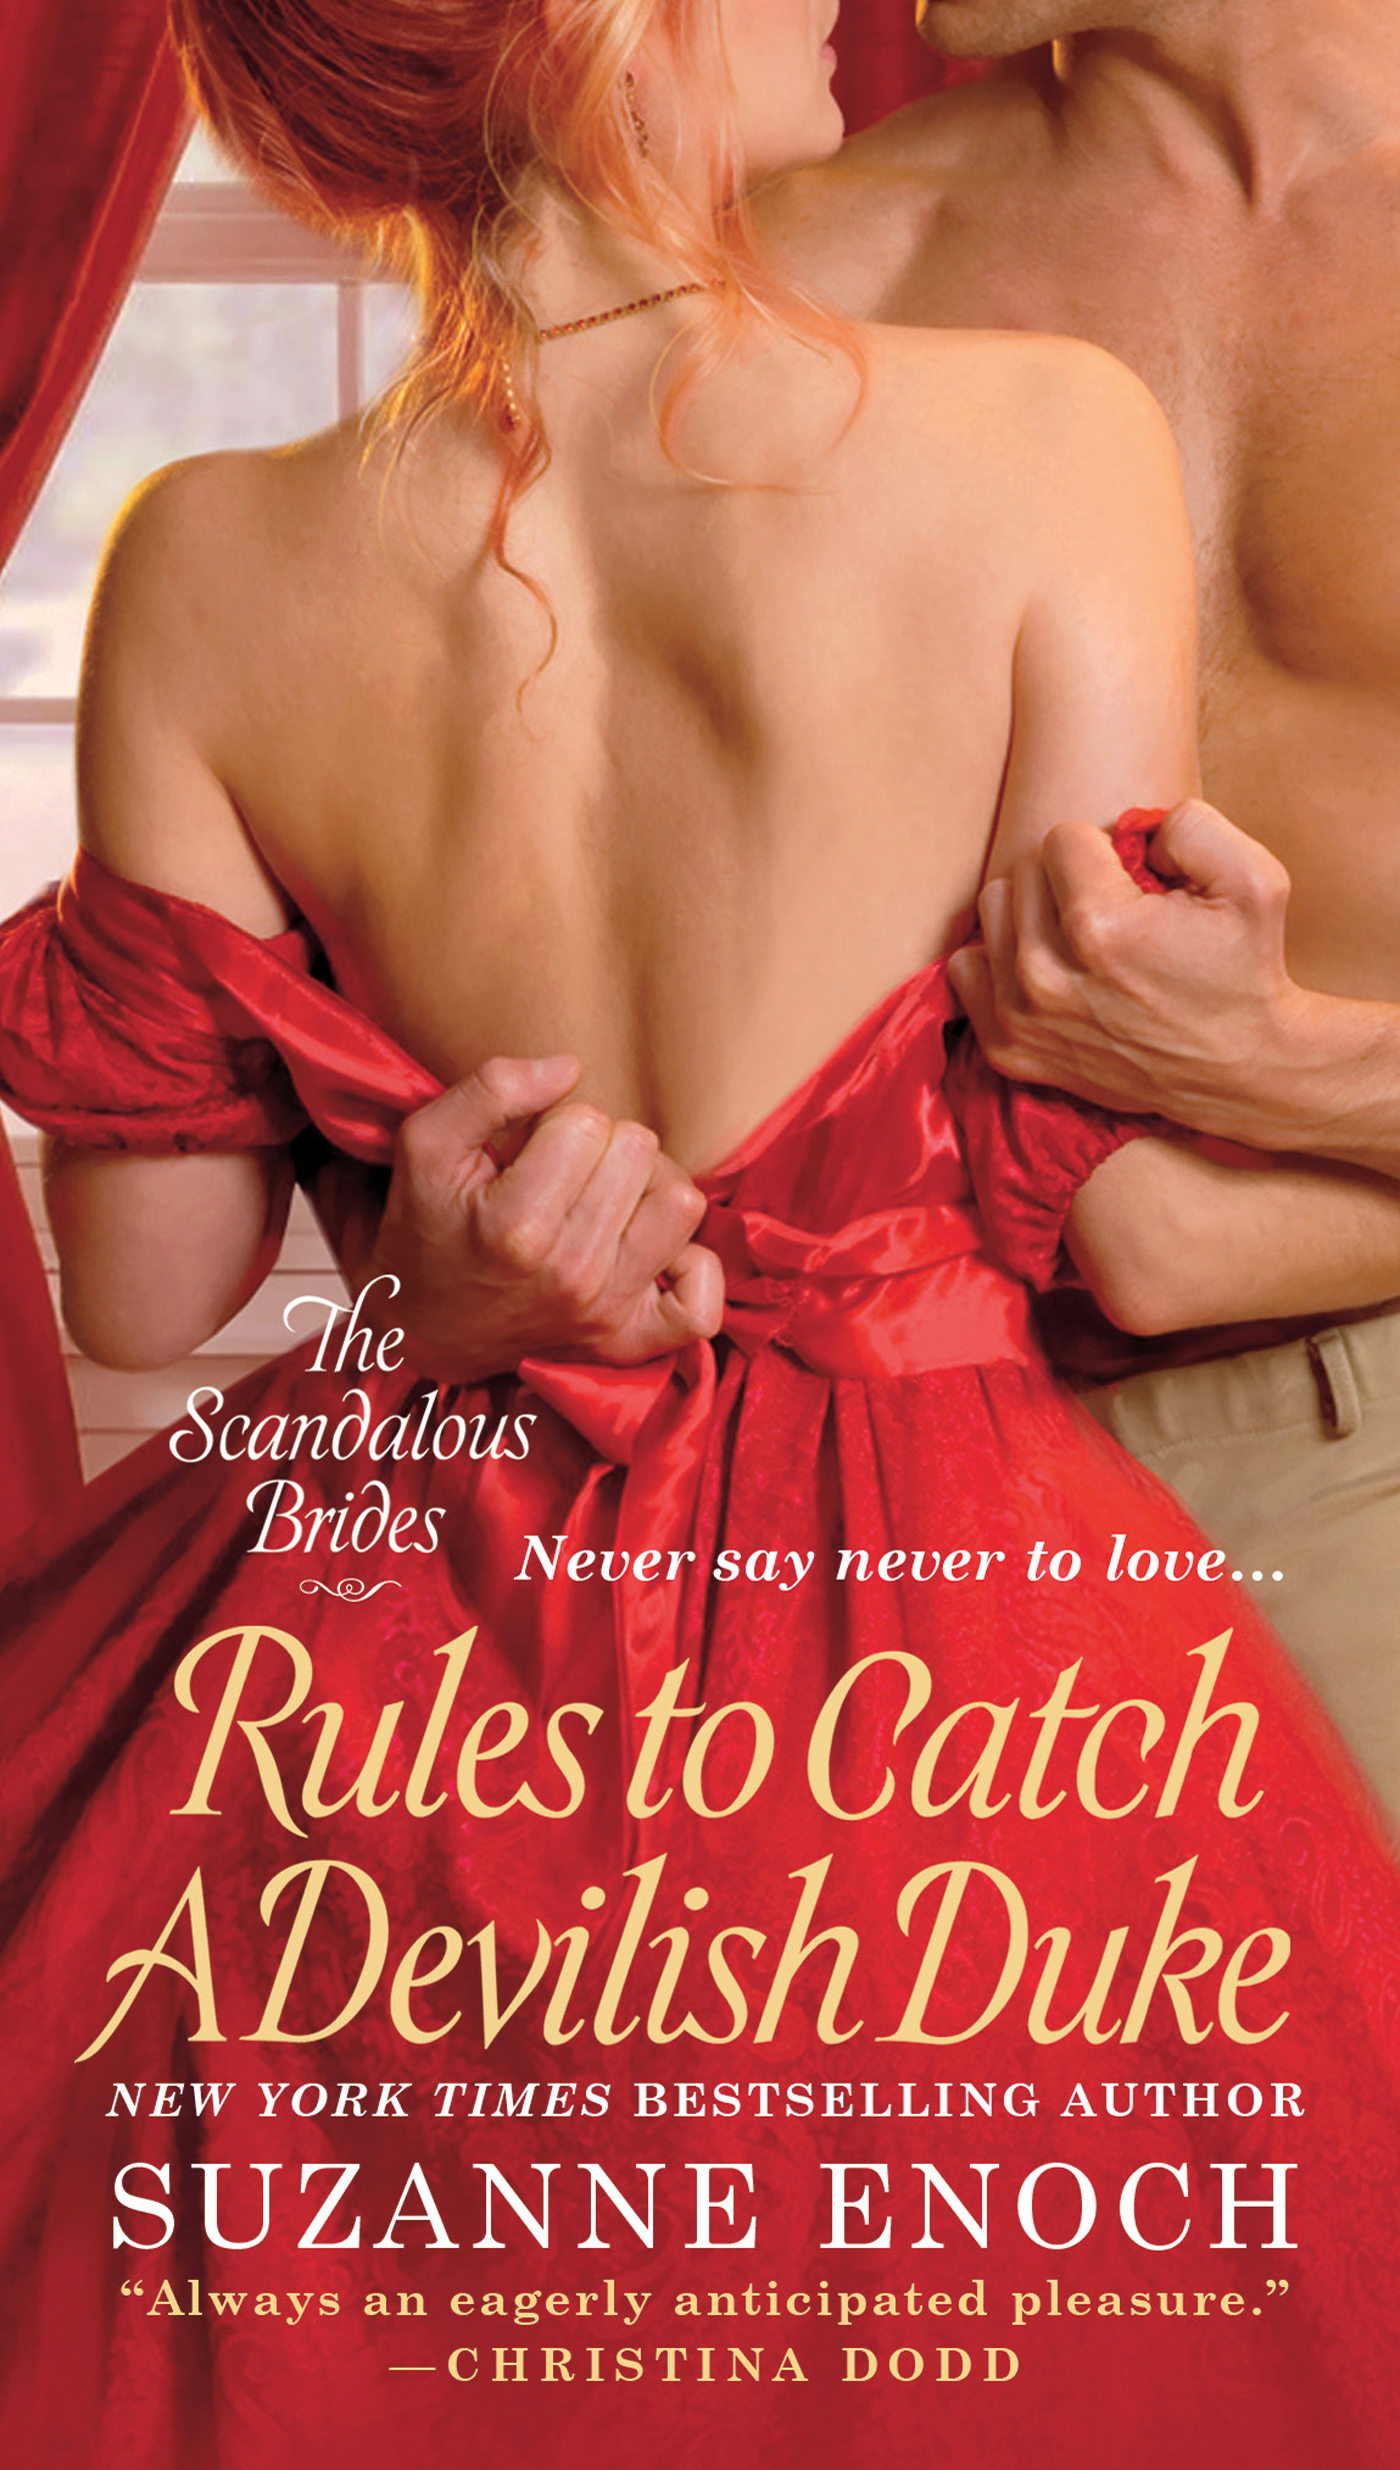 Rules to Catch a Devilish Duke By: Suzanne Enoch